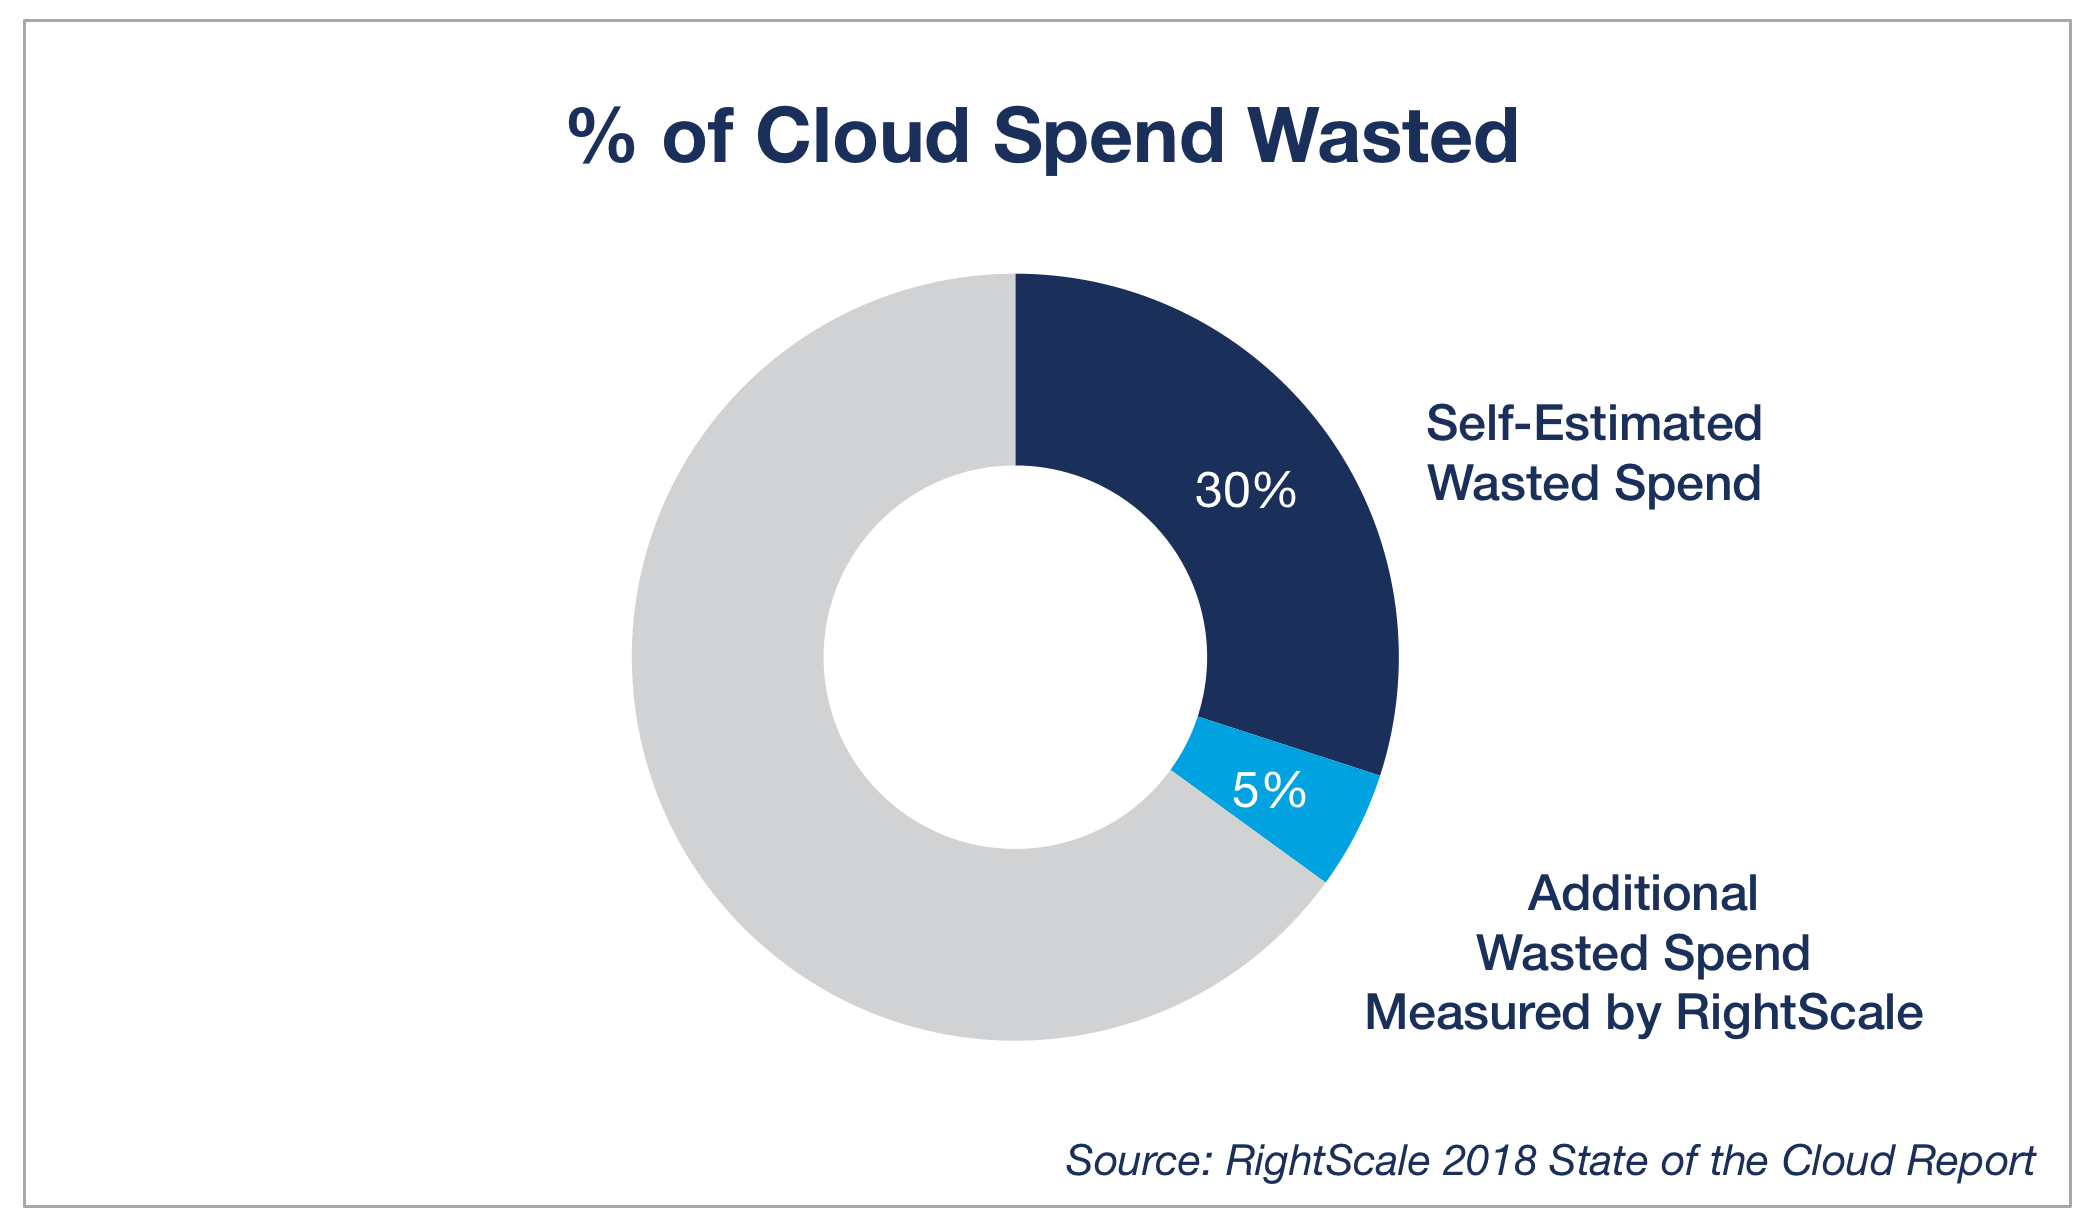 Pilvitrendit_Cloud-Computing-Trends-Percent-of-Wasted-Cloud-Spend